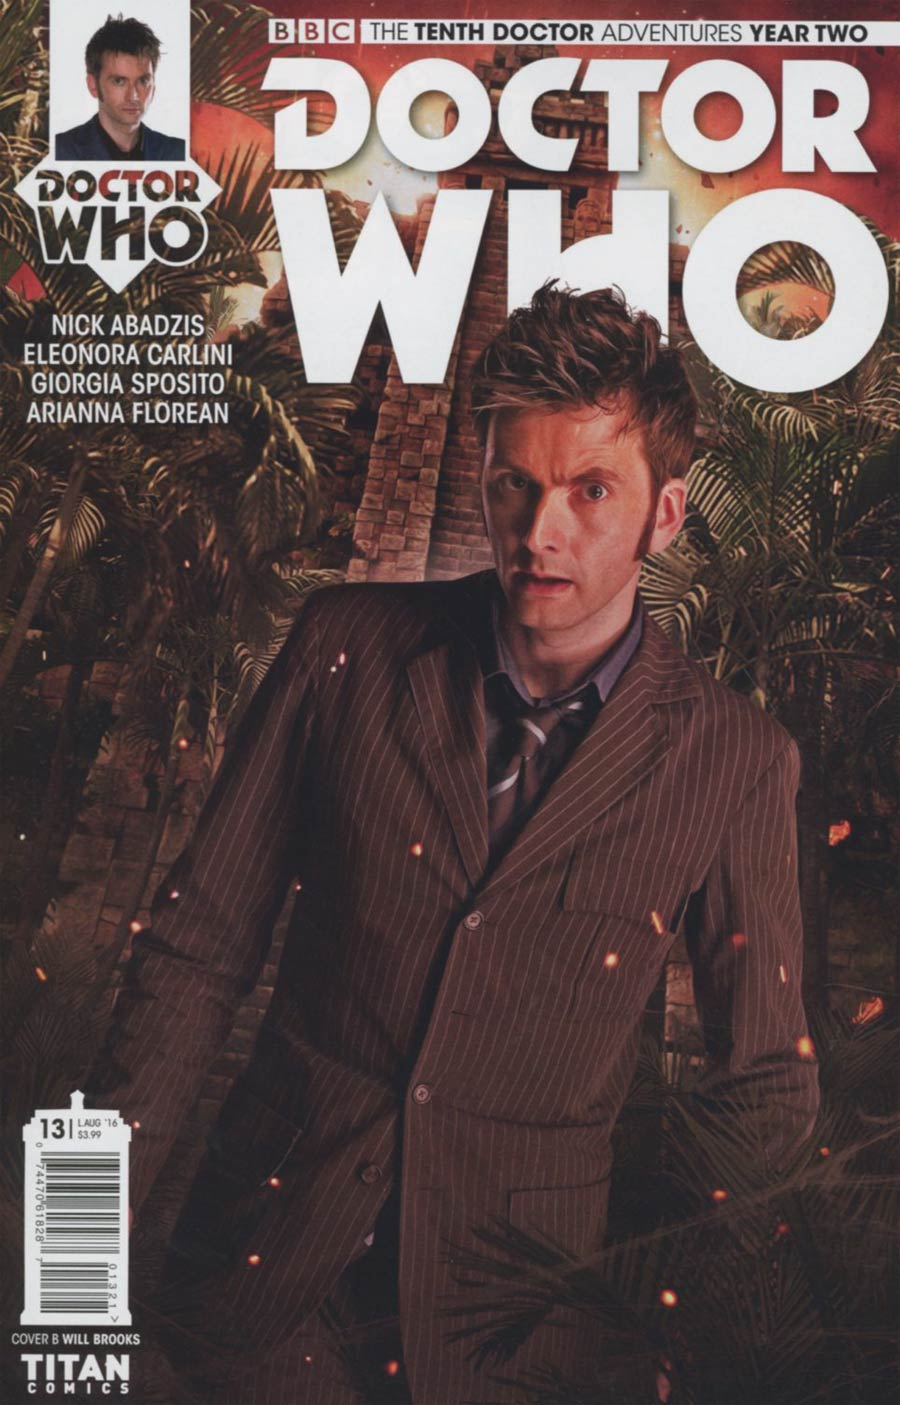 Doctor Who 10th Doctor Year Two #13 Cover B Variant Photo Cover